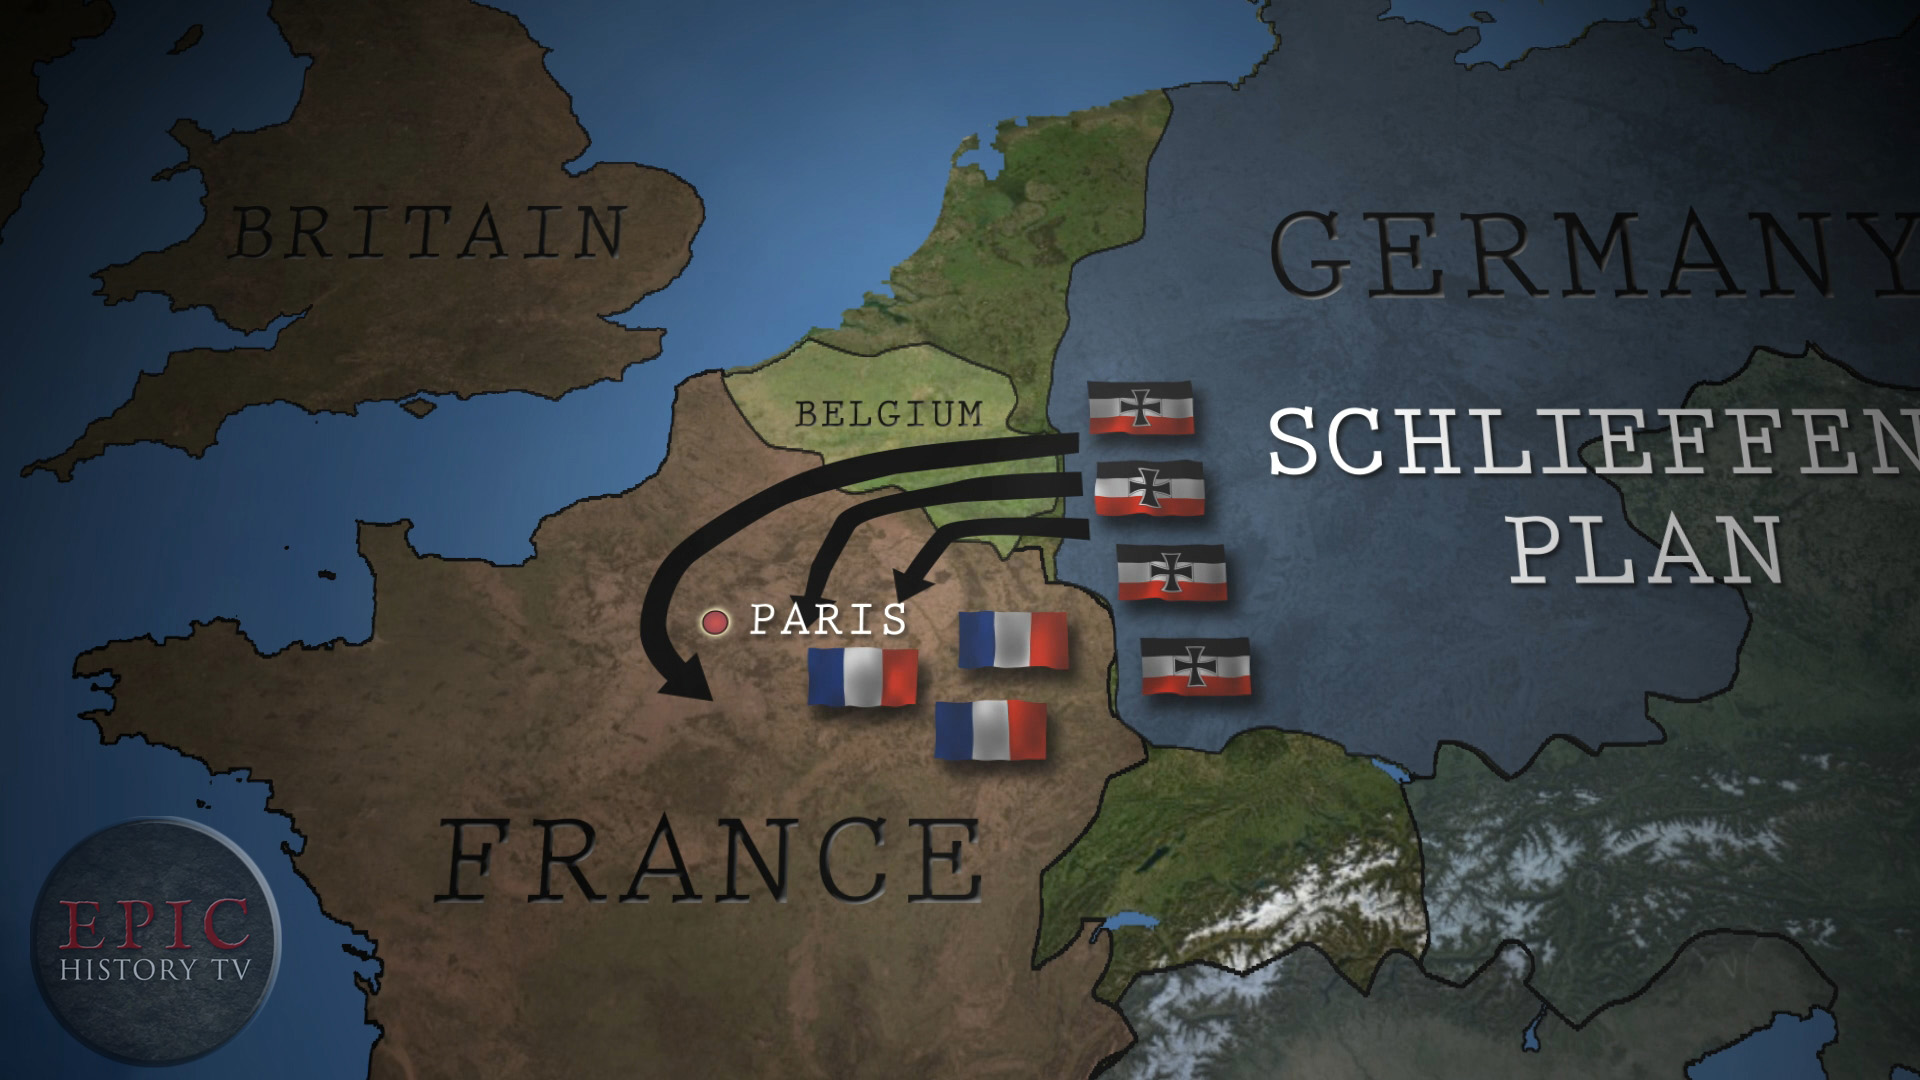 The Schlieffen Plan, named after German Field Marshal von Schlieffen, was Germany's answer to the problem of facing a war on two fronts - against France in the west, and her ally Russia in the east. The solution, according to the plan, was to launch a rapid invasion of France through neutral Belgium, encircle Paris, and win a decisive victory against the French army, before moving German forces to the east, to face Russia, whose army was predicted to take much longer to mobilise. A modified version of this plan was enacted by the German High Command in the summer of 1914, but was halted by the Allies at the Battle of the Marne. Many historians question whether it was ever feasible.  WATCH THE VIDEO